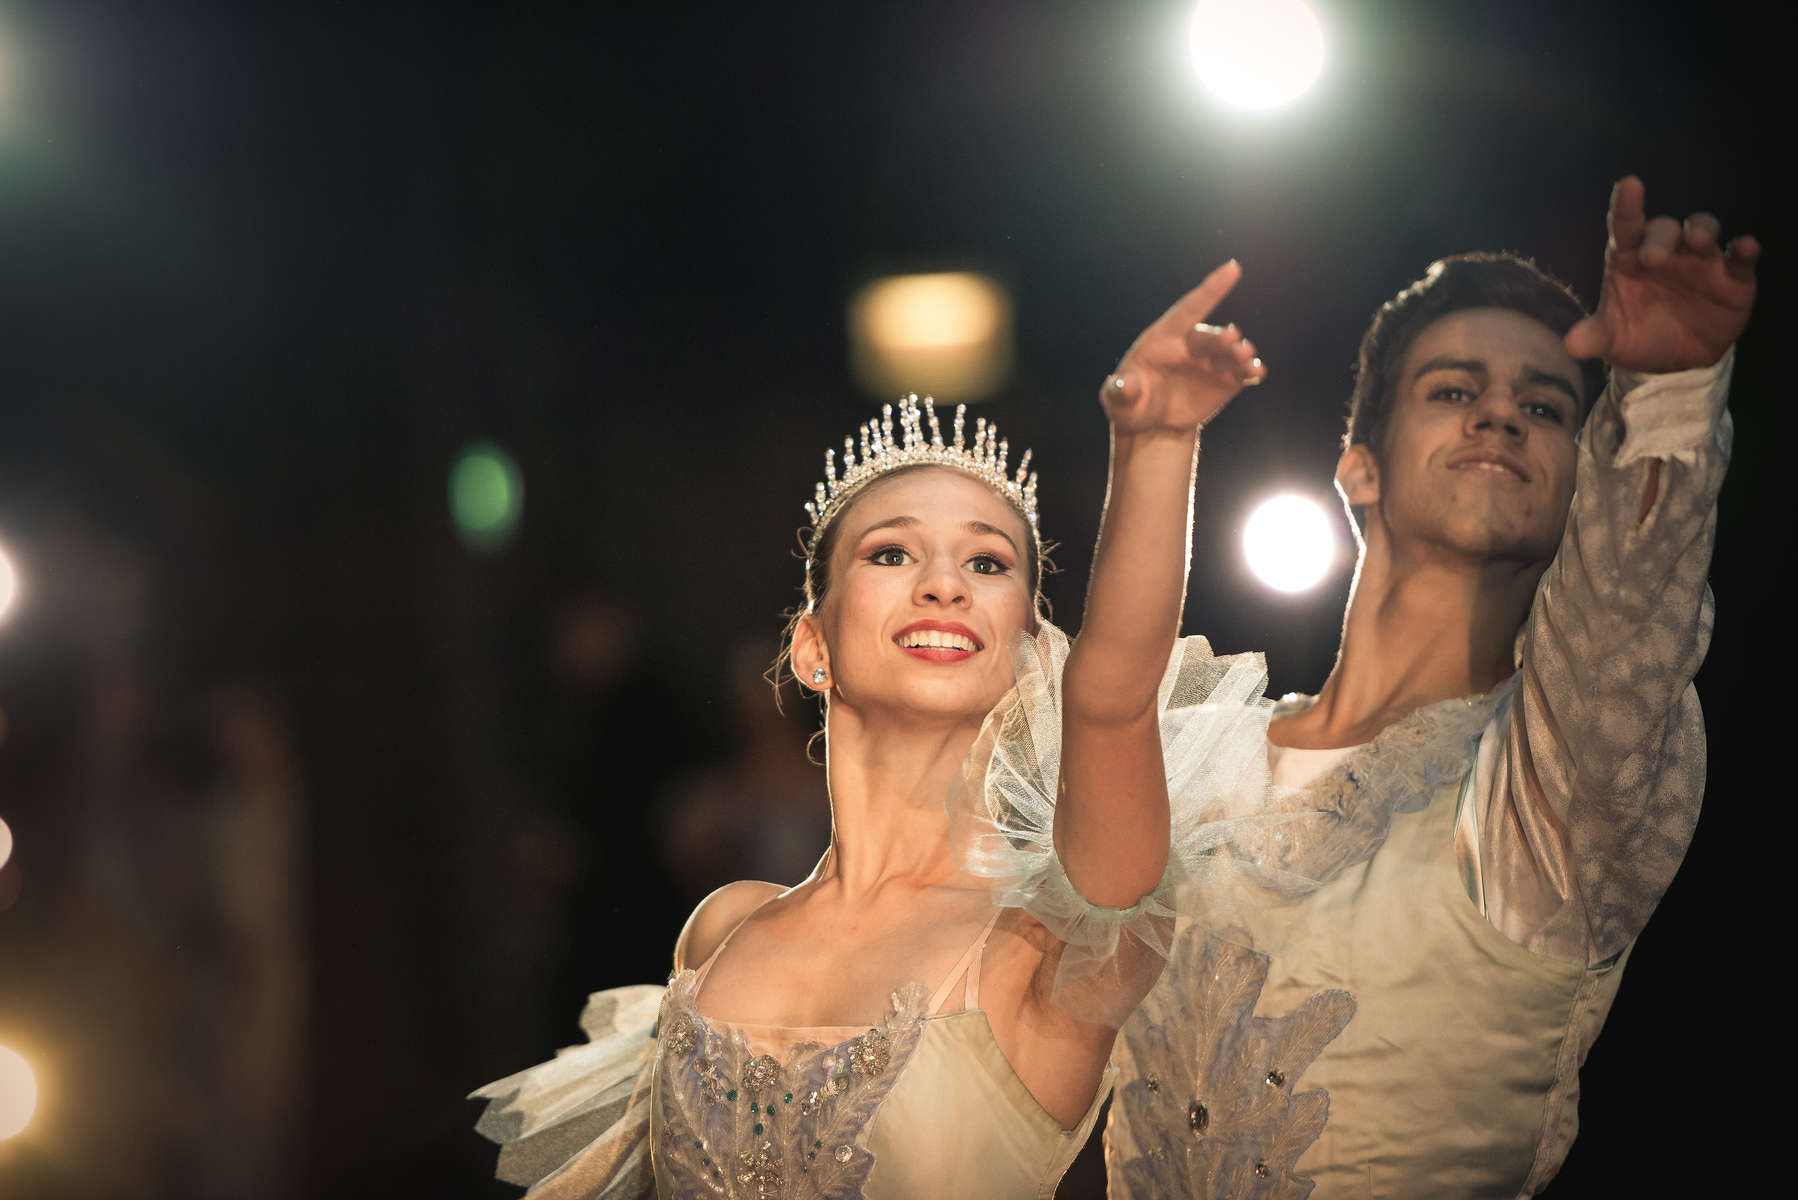 Catherine Conley and Cuban ballet dancer Dario Hernandez Robaina perform in the Ruth Page Center for the Performing Arts production of {quote}The Nutcracker{quote} at Northeastern Illinois University, December 4, 2016. Conley returned from her studies in Havana for the performance.©2018 Alex Garcia